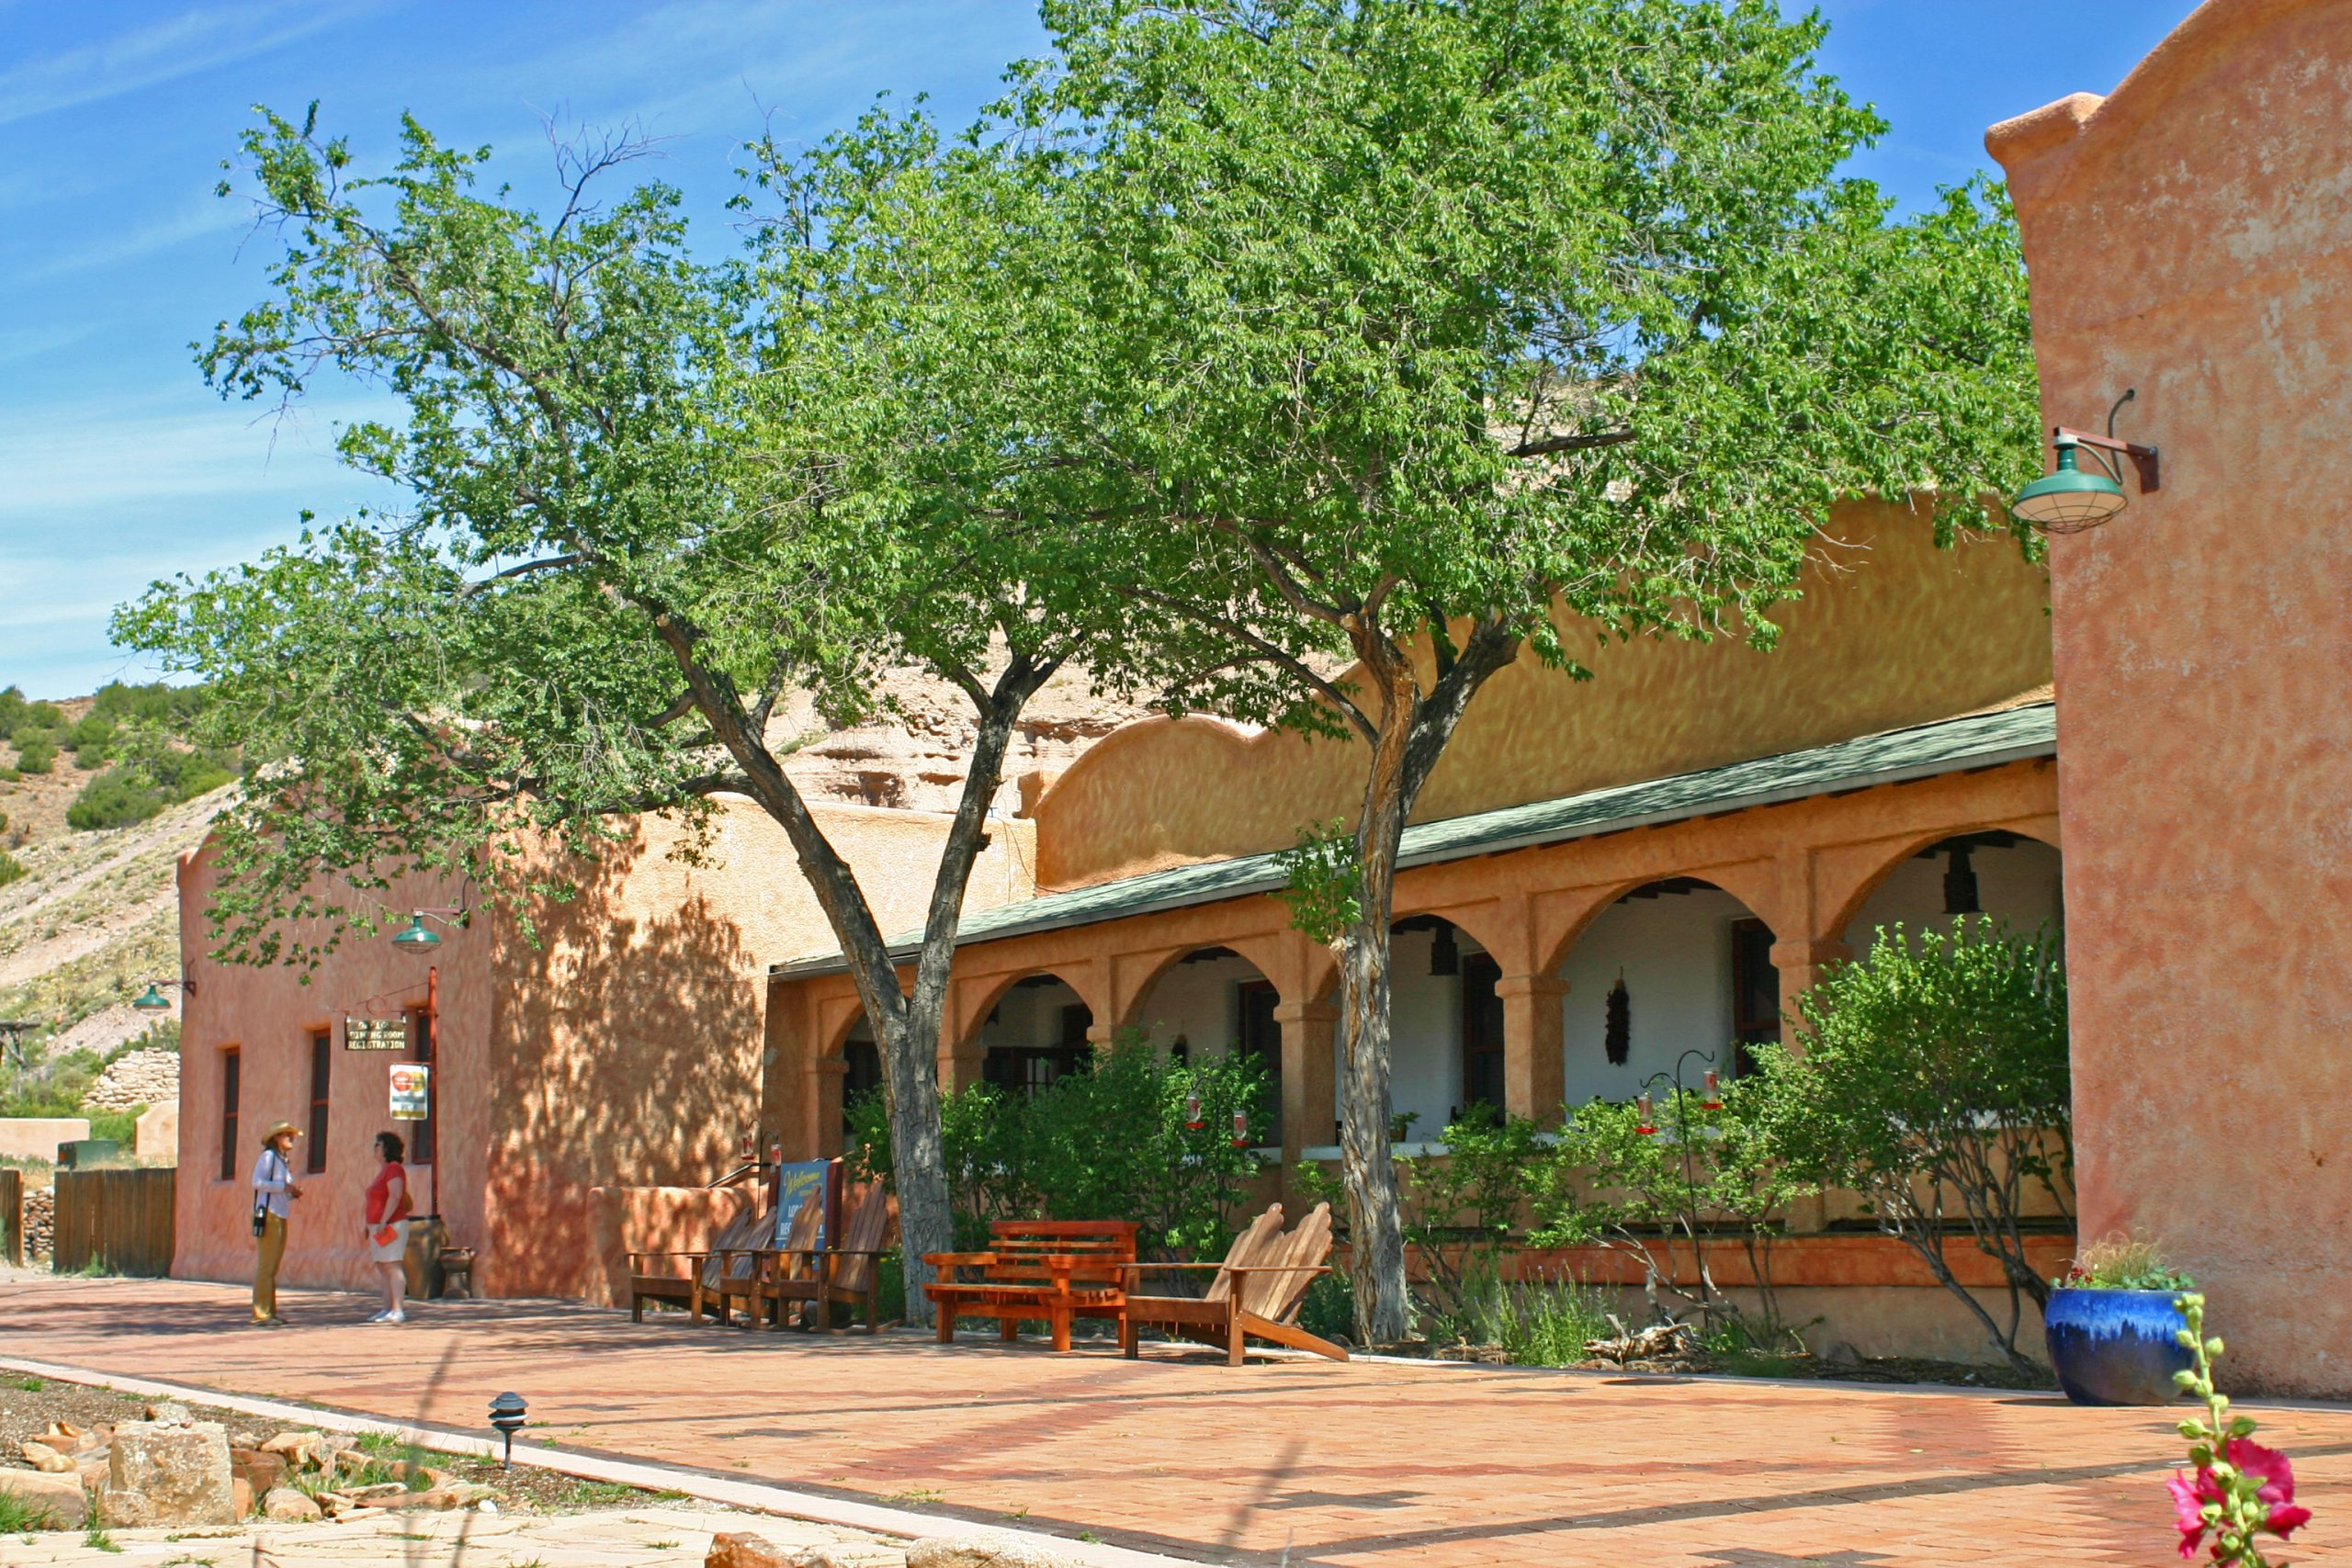 The hotel at Ojo Caliente reflects the architectural style of New Mexico